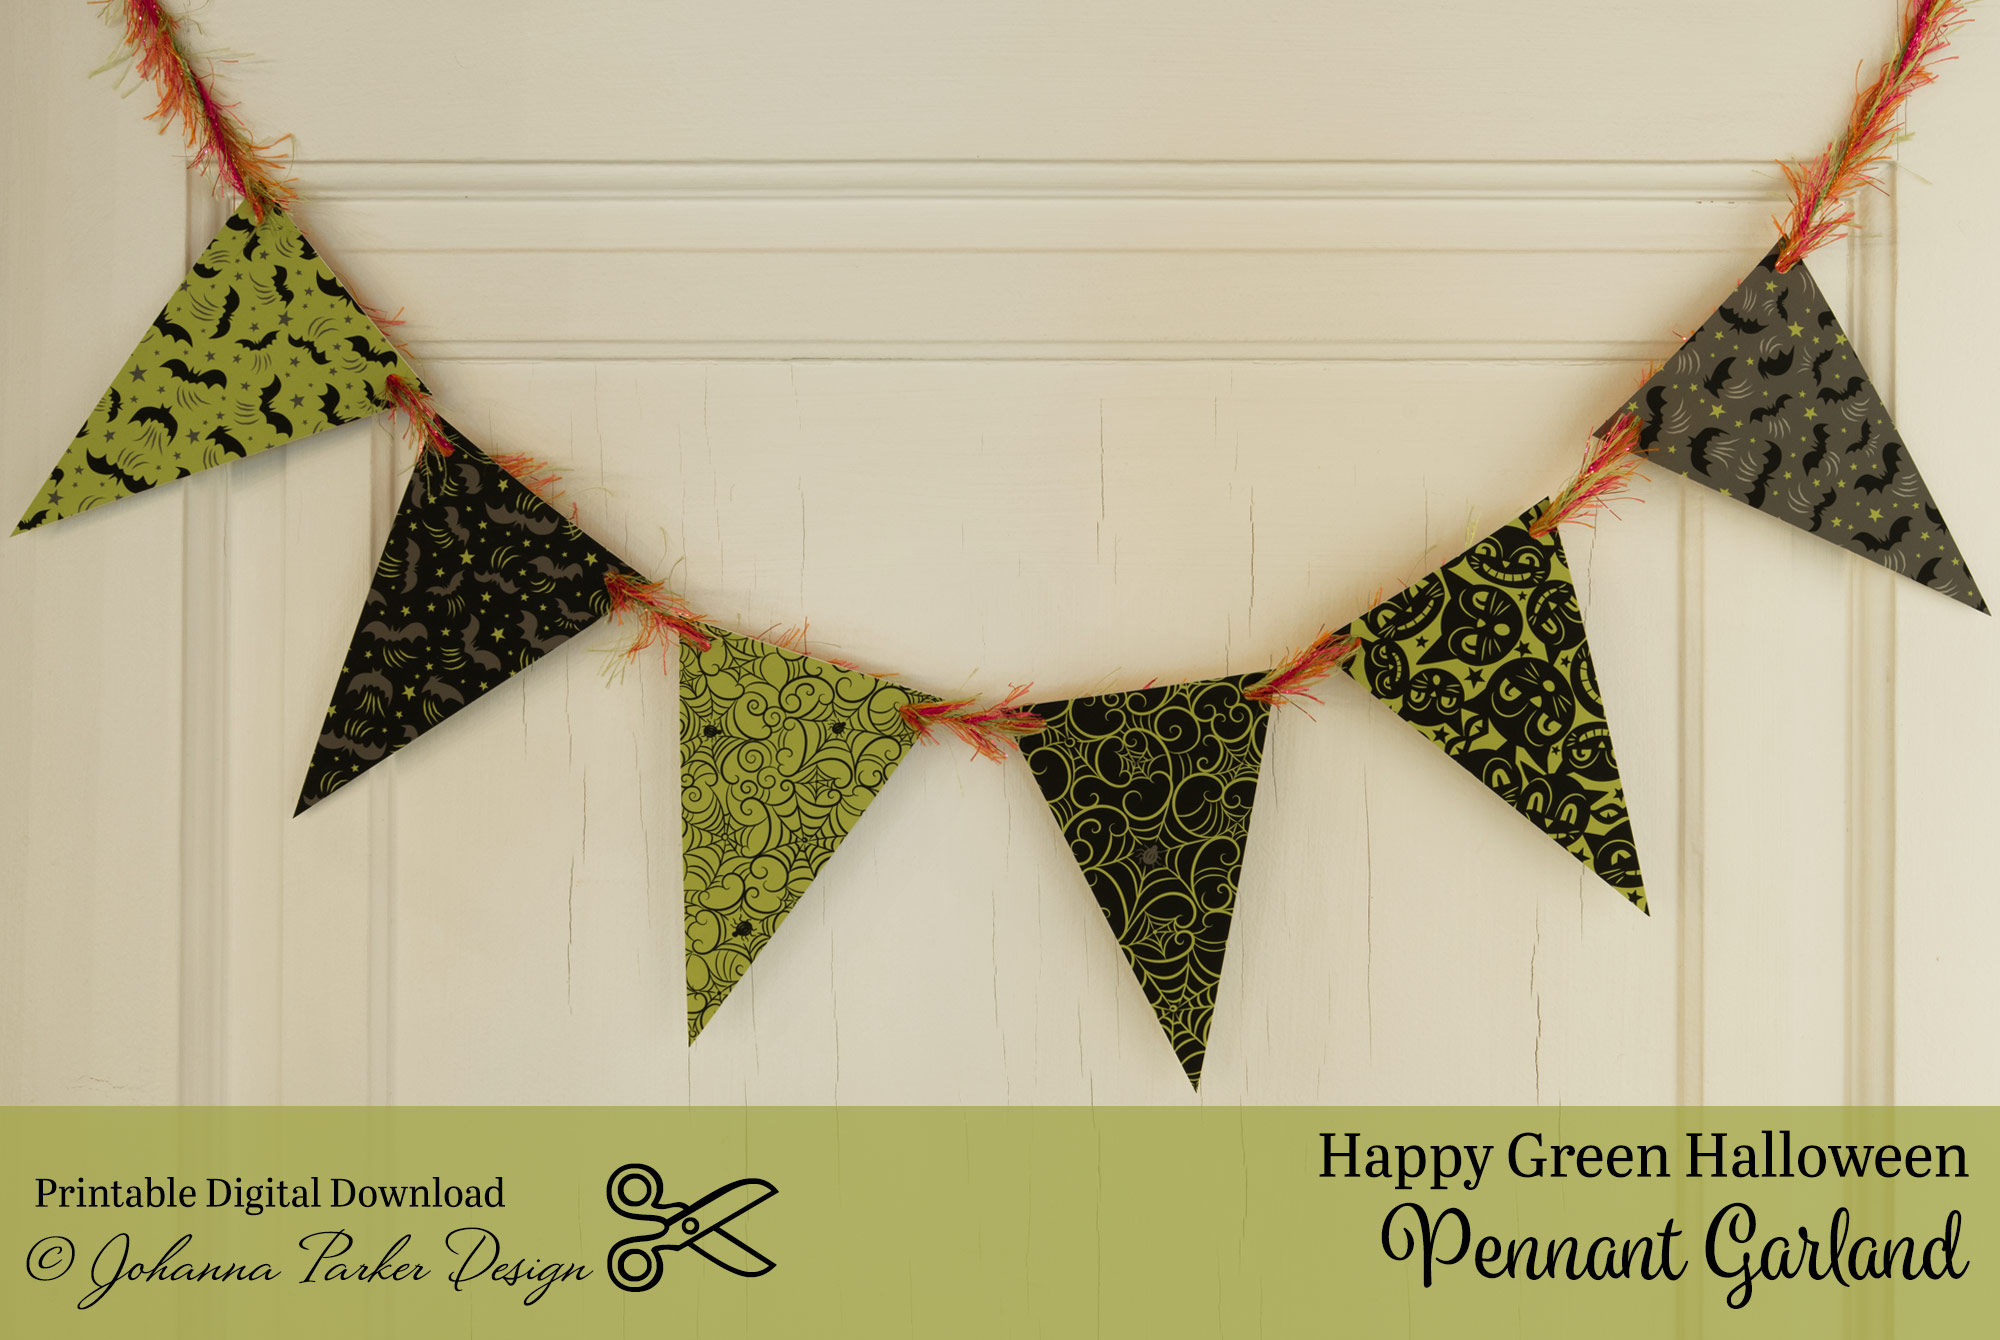 Happy Green Halloween Pennant Garland \u2014 Johanna Parker Design